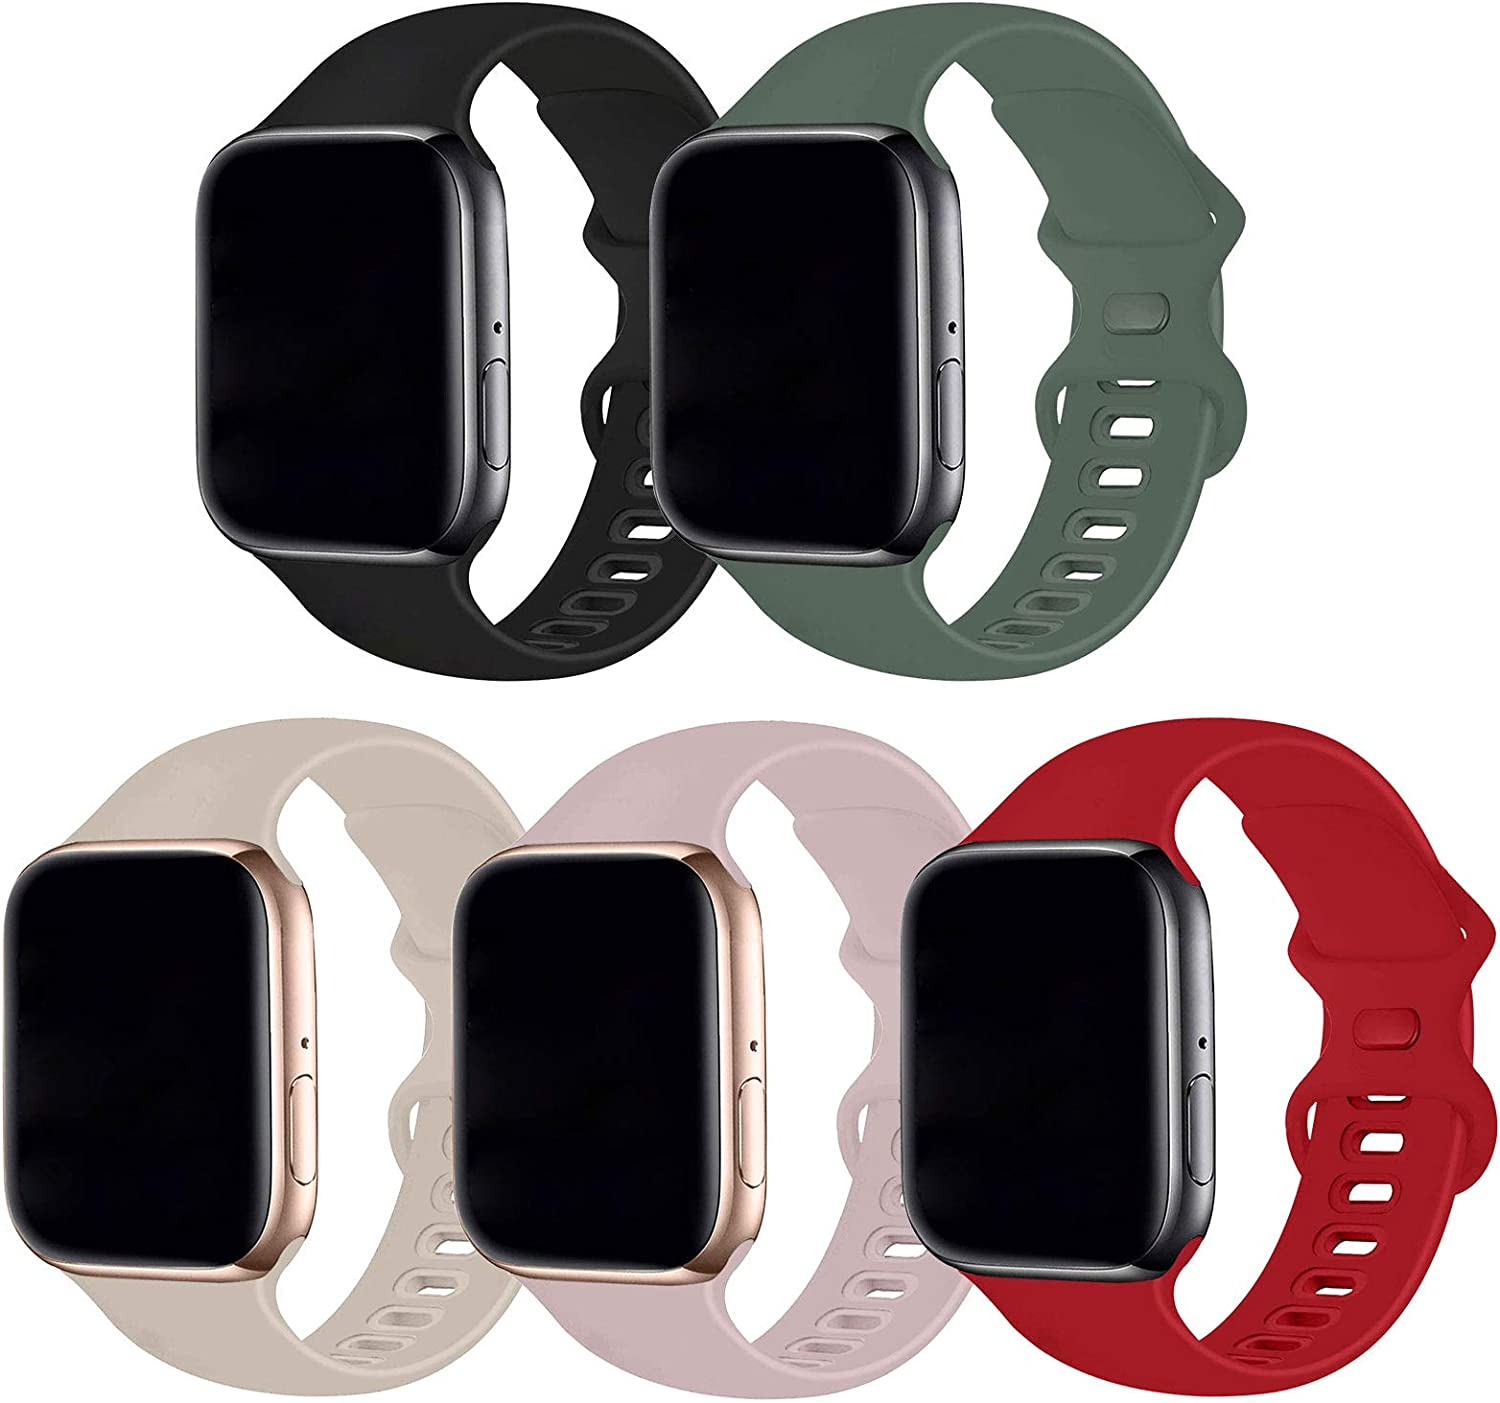 Bifeiyo 5 Pack Compatible with Apple Watch Band 38mm 40mm SM,Soft Silicone Sport Replacement Straps Compatible for iWatch Series6/5/4/3/2/1/SE(Black/Pine Green/Stone/Pink Sand/Red)